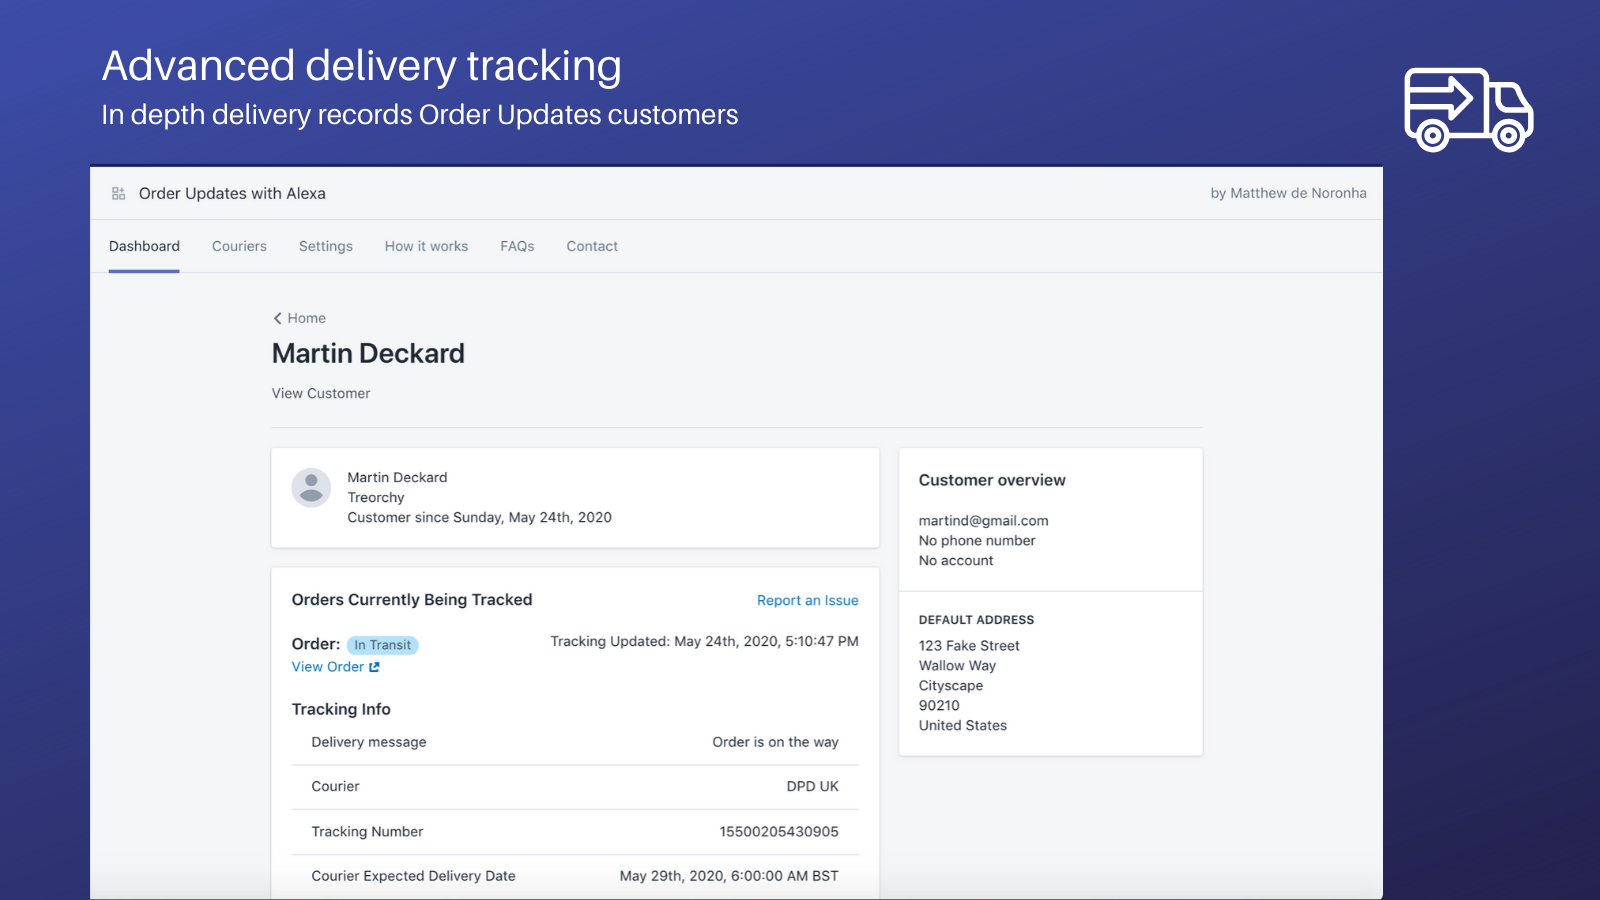 Advanced delivery tracking